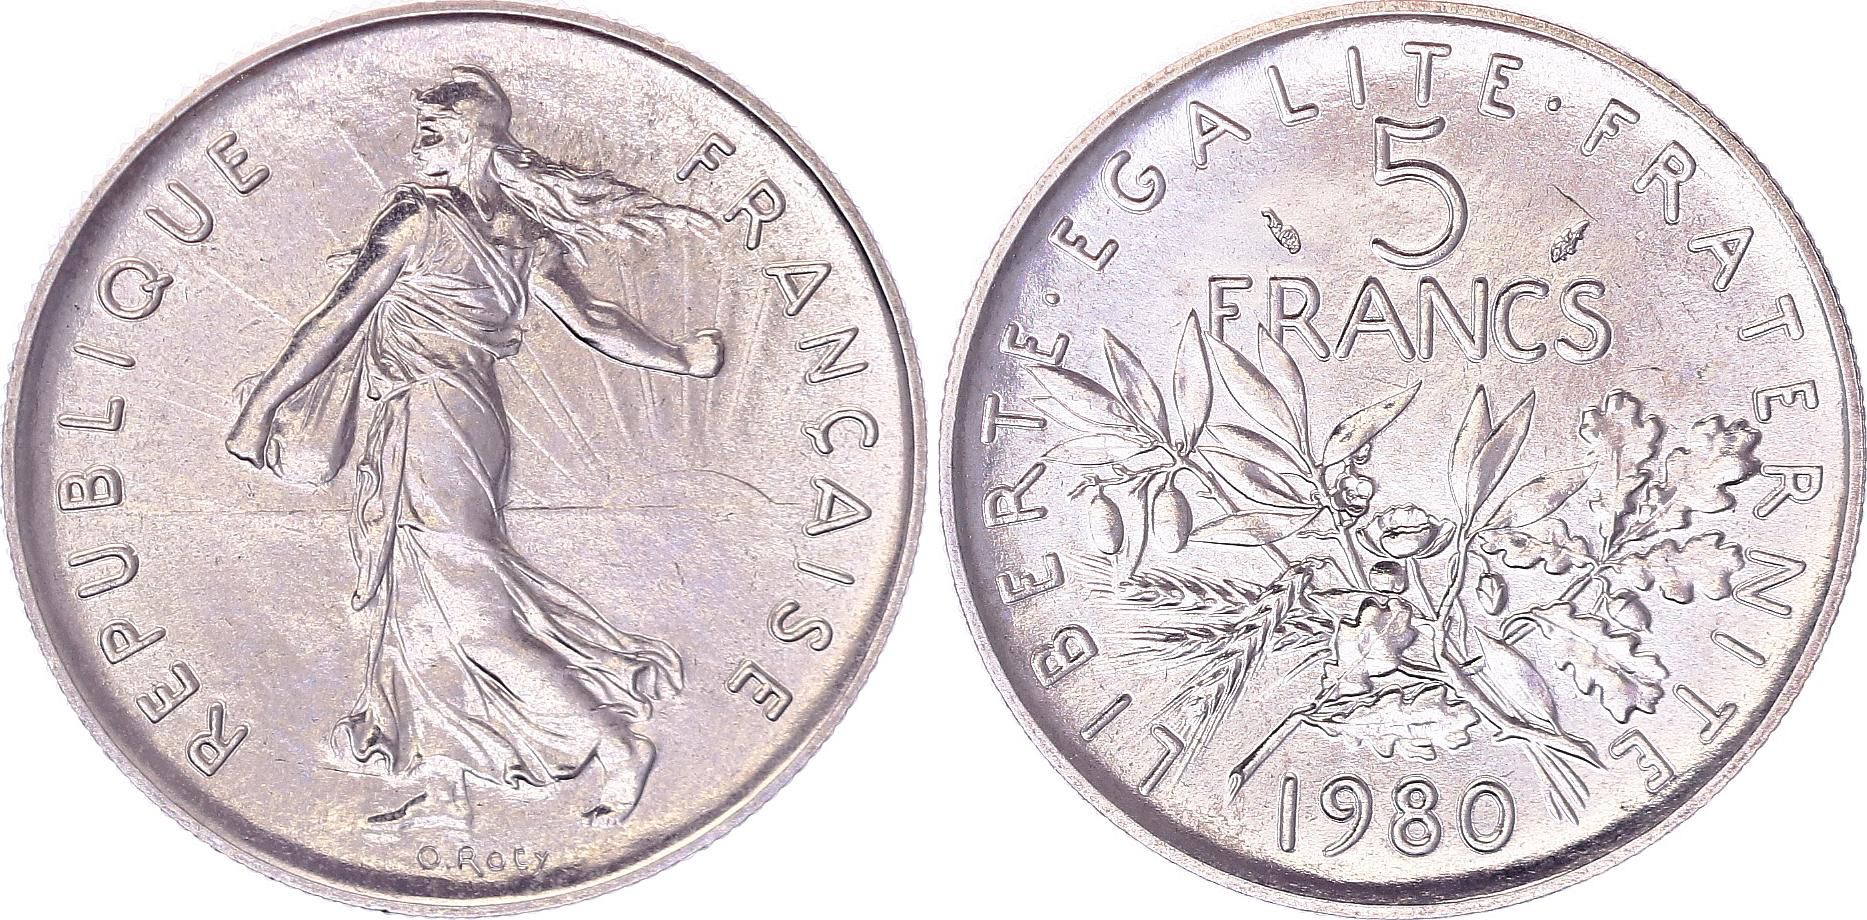 France 5 Francs Woman sowing seed - 1980 - UNC